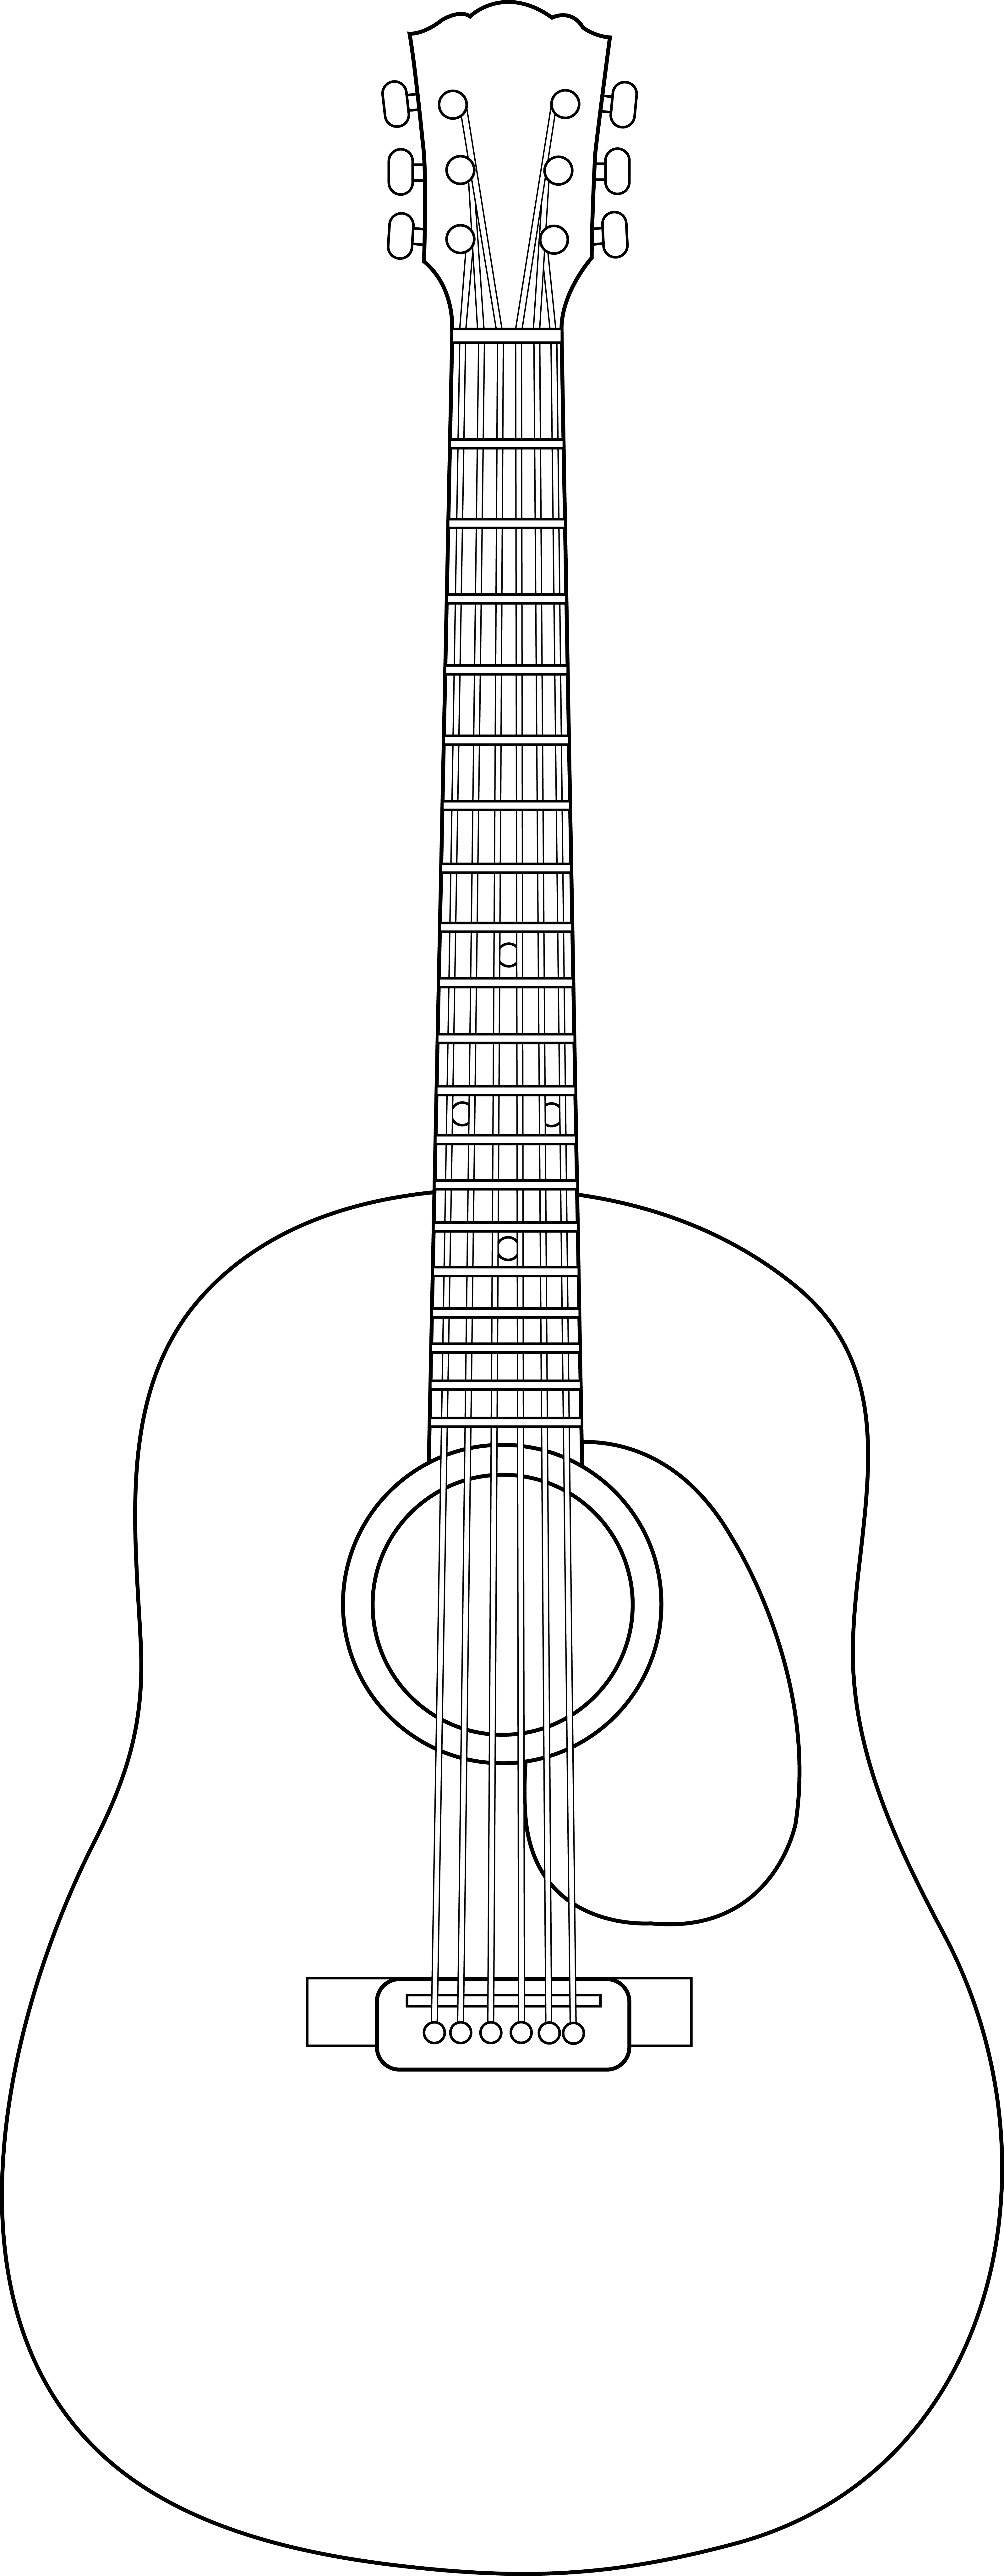 clip freeuse download Design free on. Acoustic clipart classical guitar